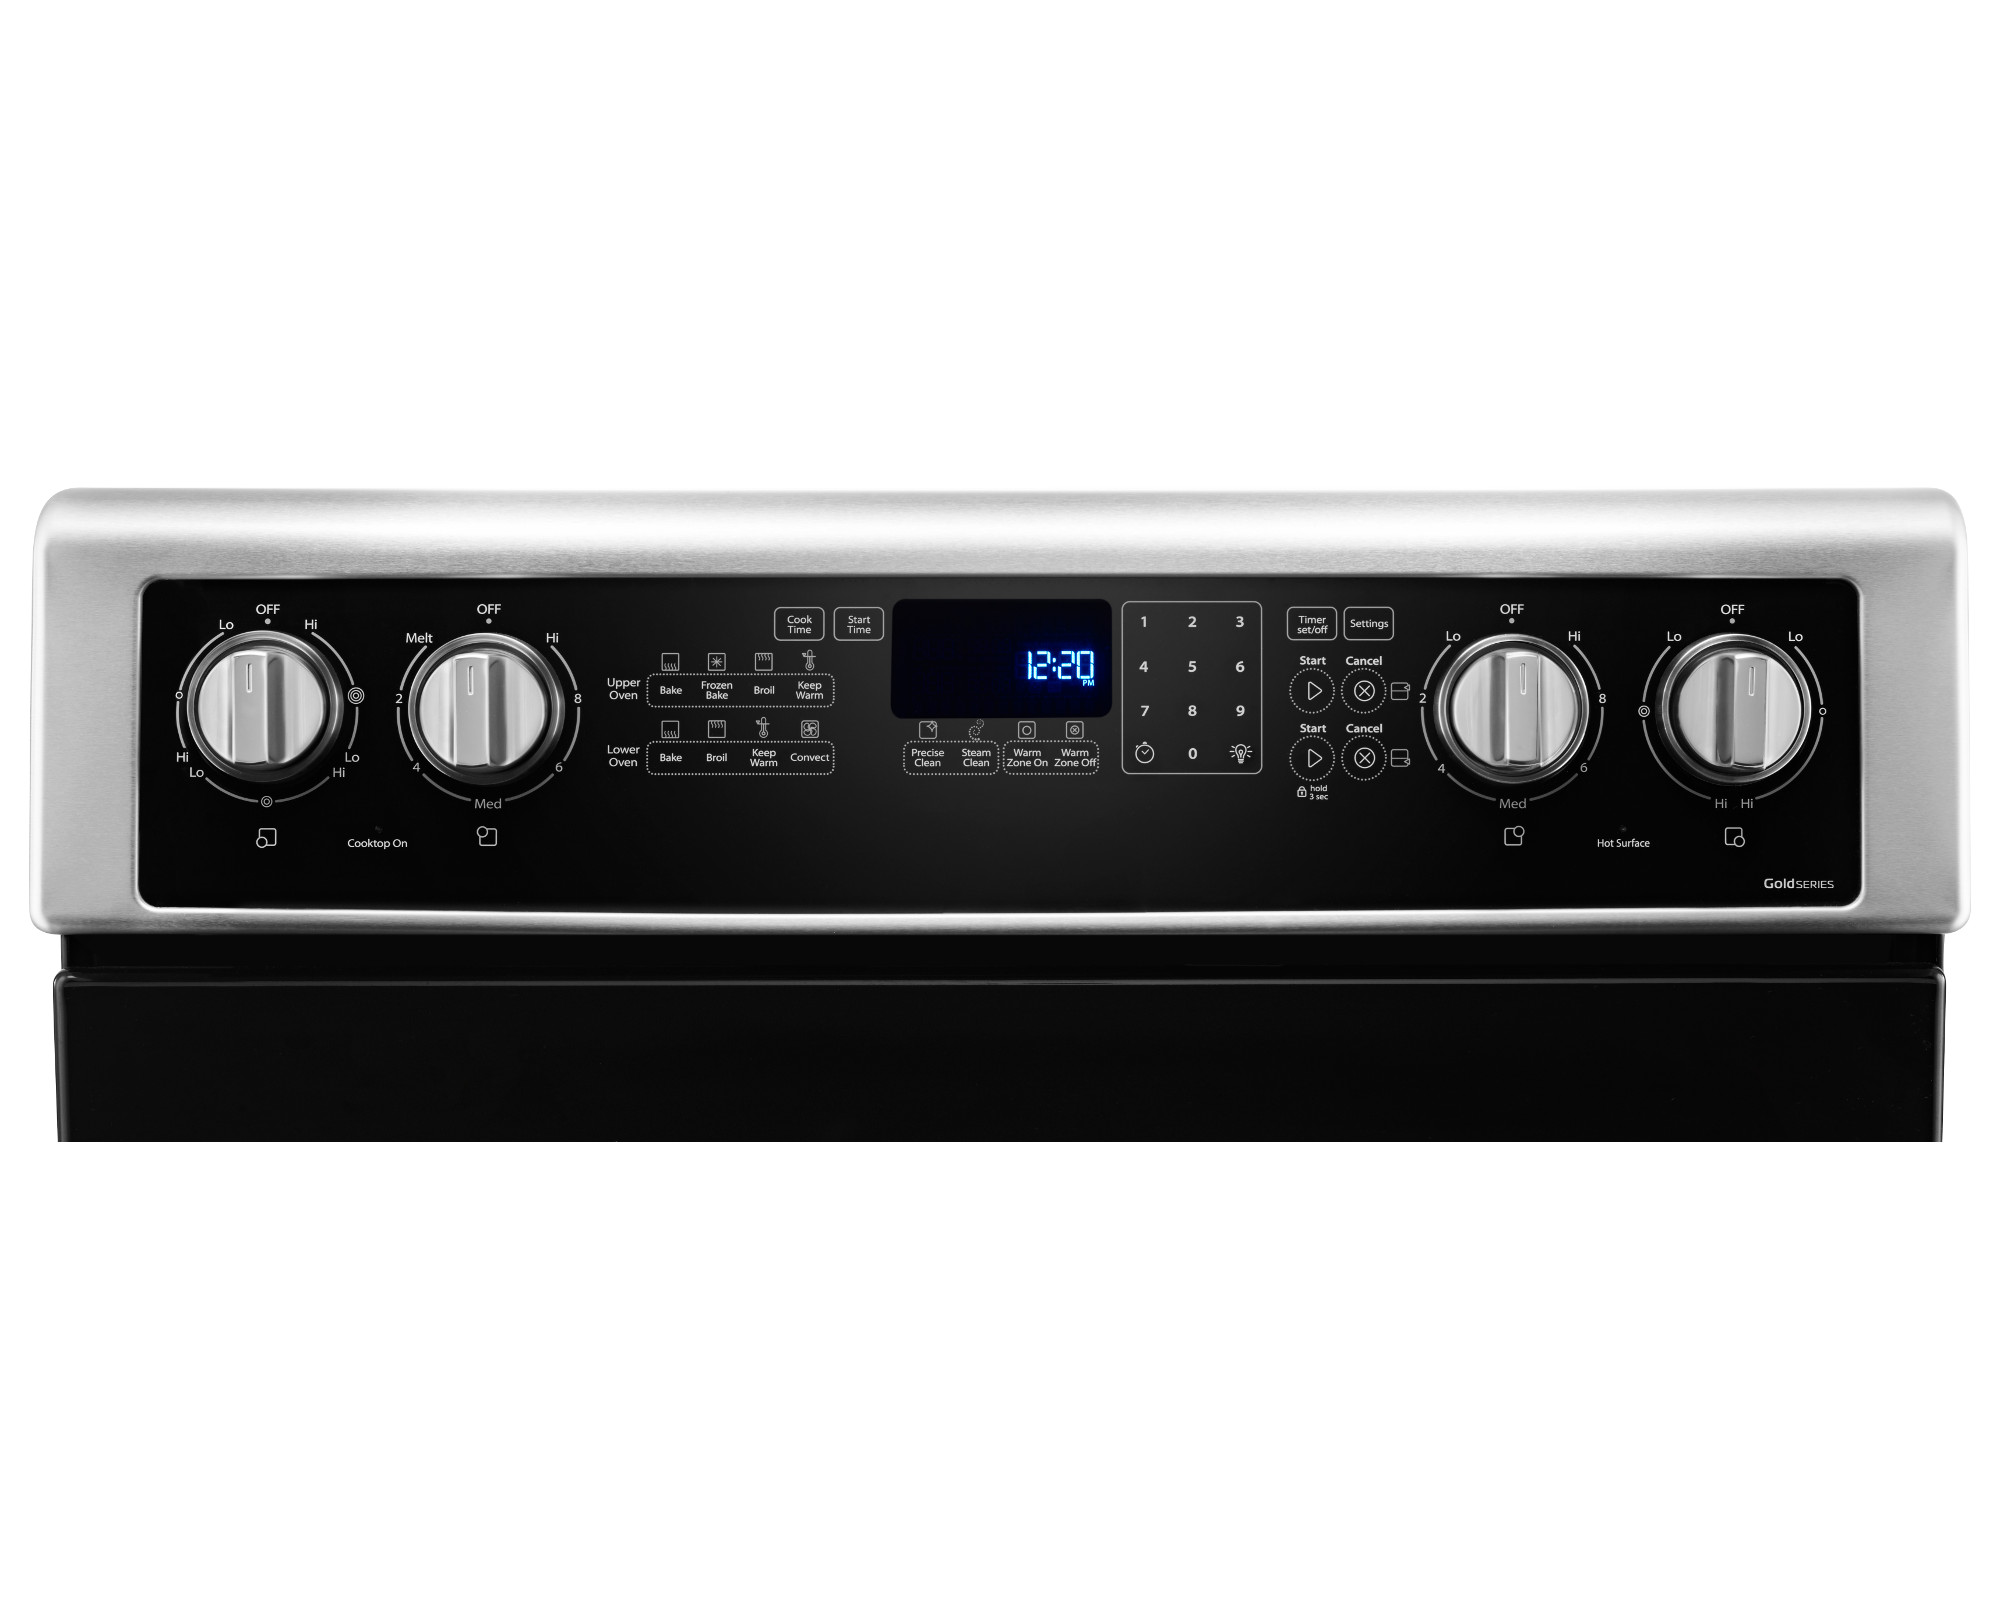 Whirlpool WGE745C0FS 6.7 cu. ft. Electric Double Oven Range with True Convection - Stainless Steel